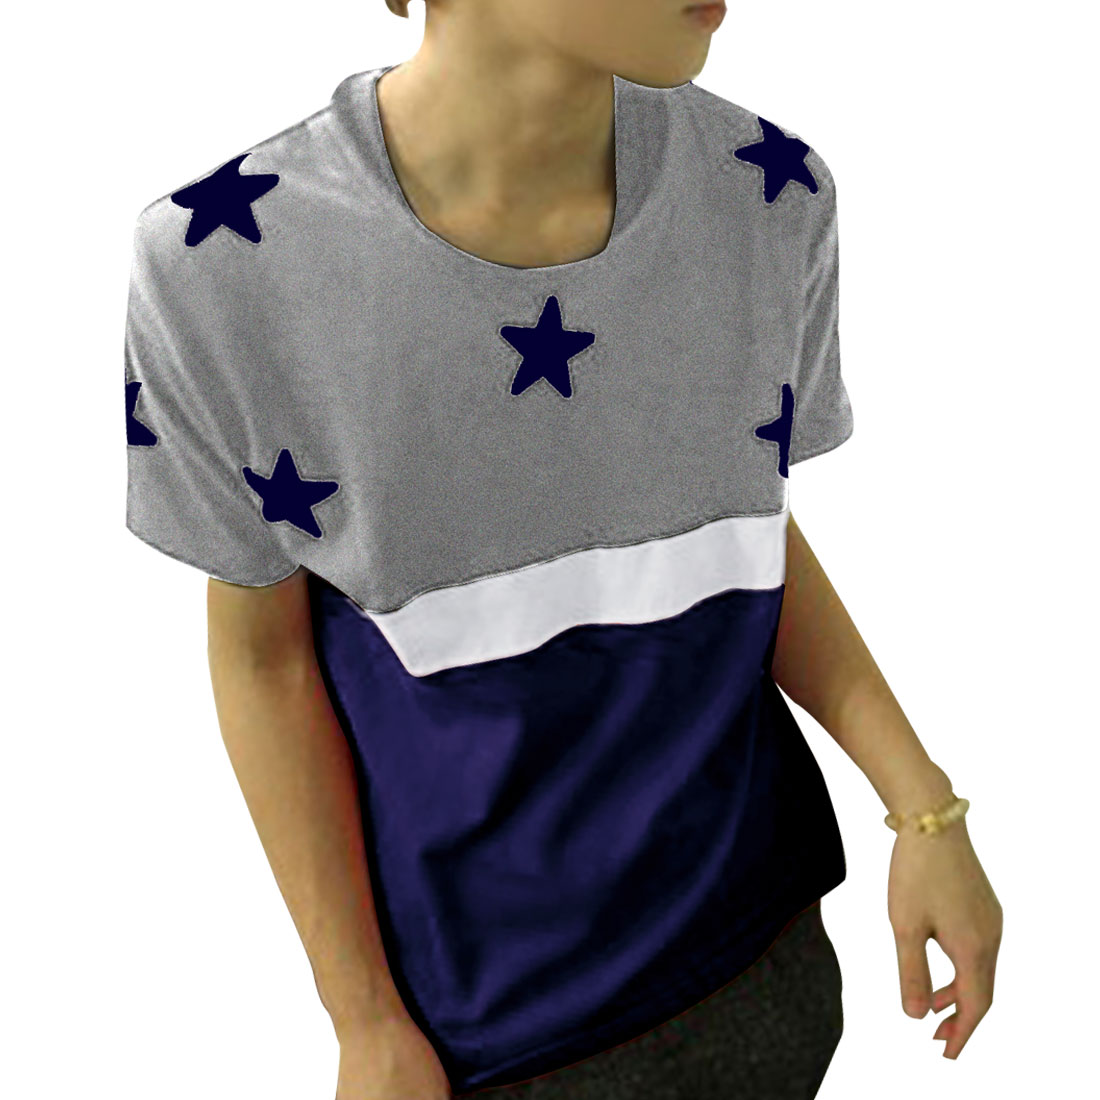 Man Stars Print Navy Blue White Gray Color Block Casual T-Shirt Blouse S